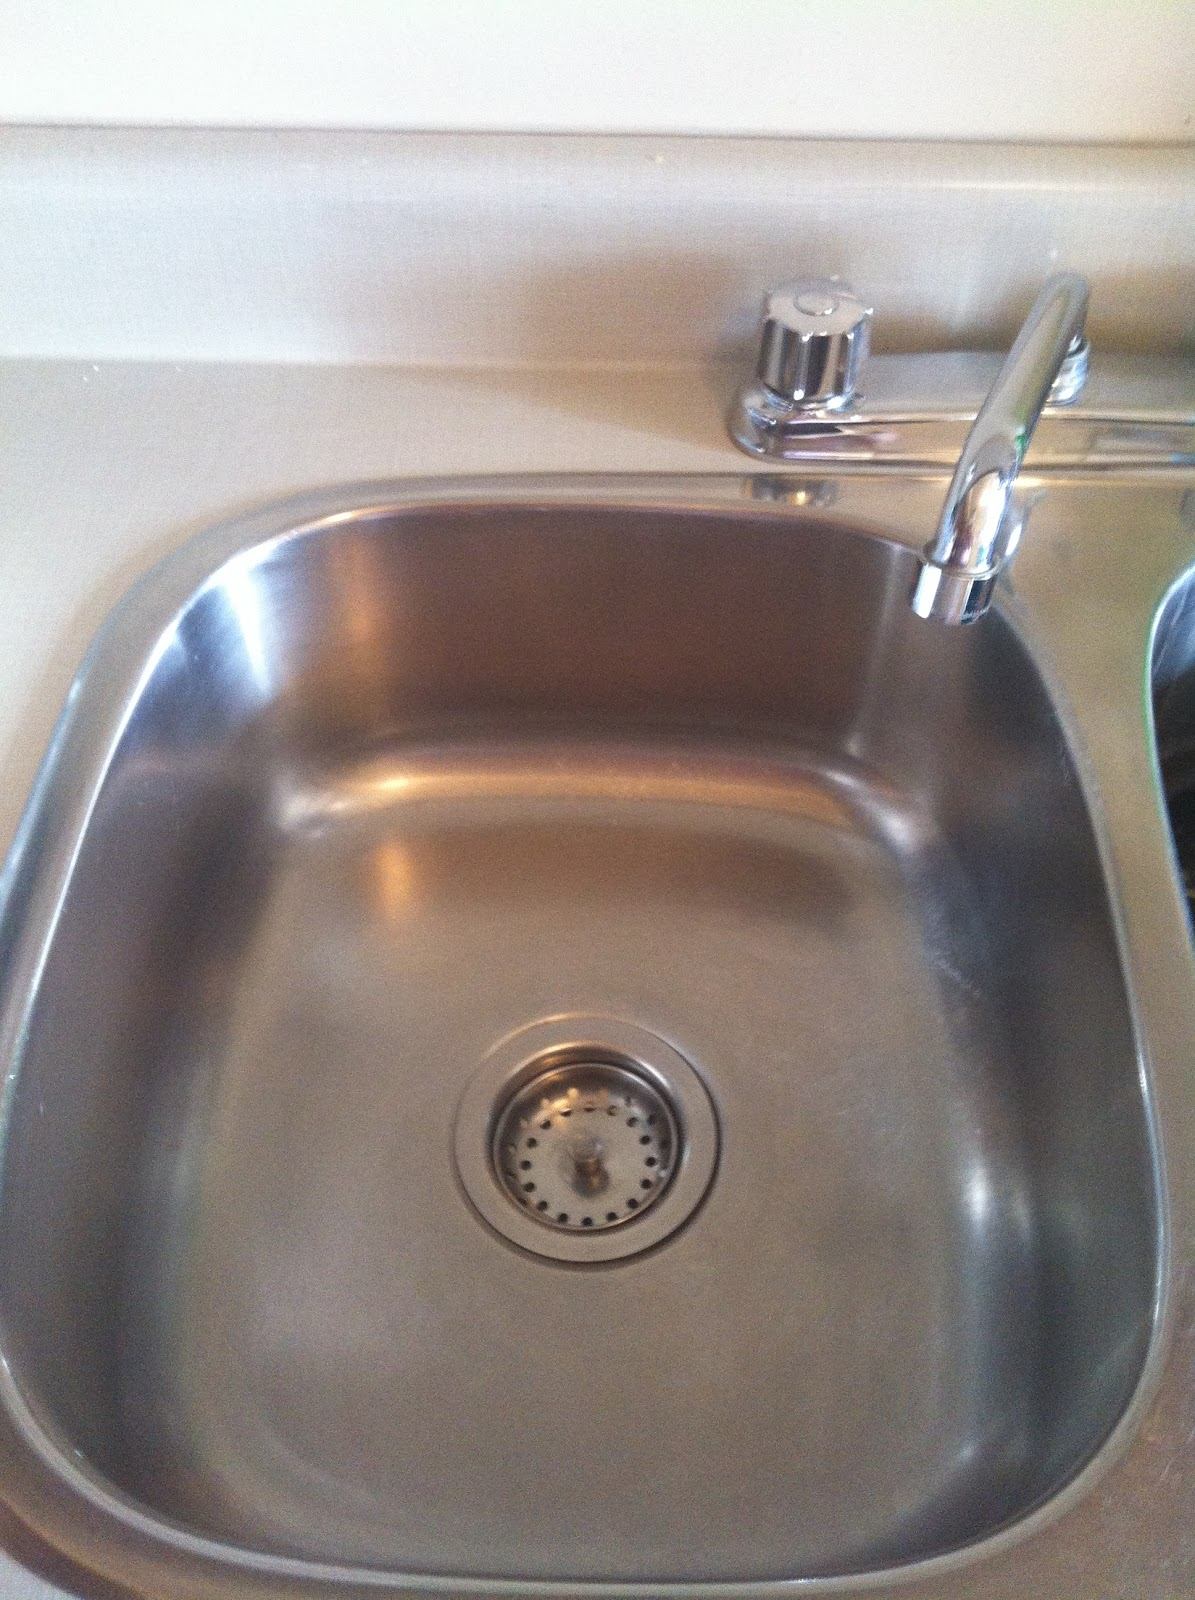 Leslie 39 s tips for life how to clean sink stains coffee for How to clean bathroom drain